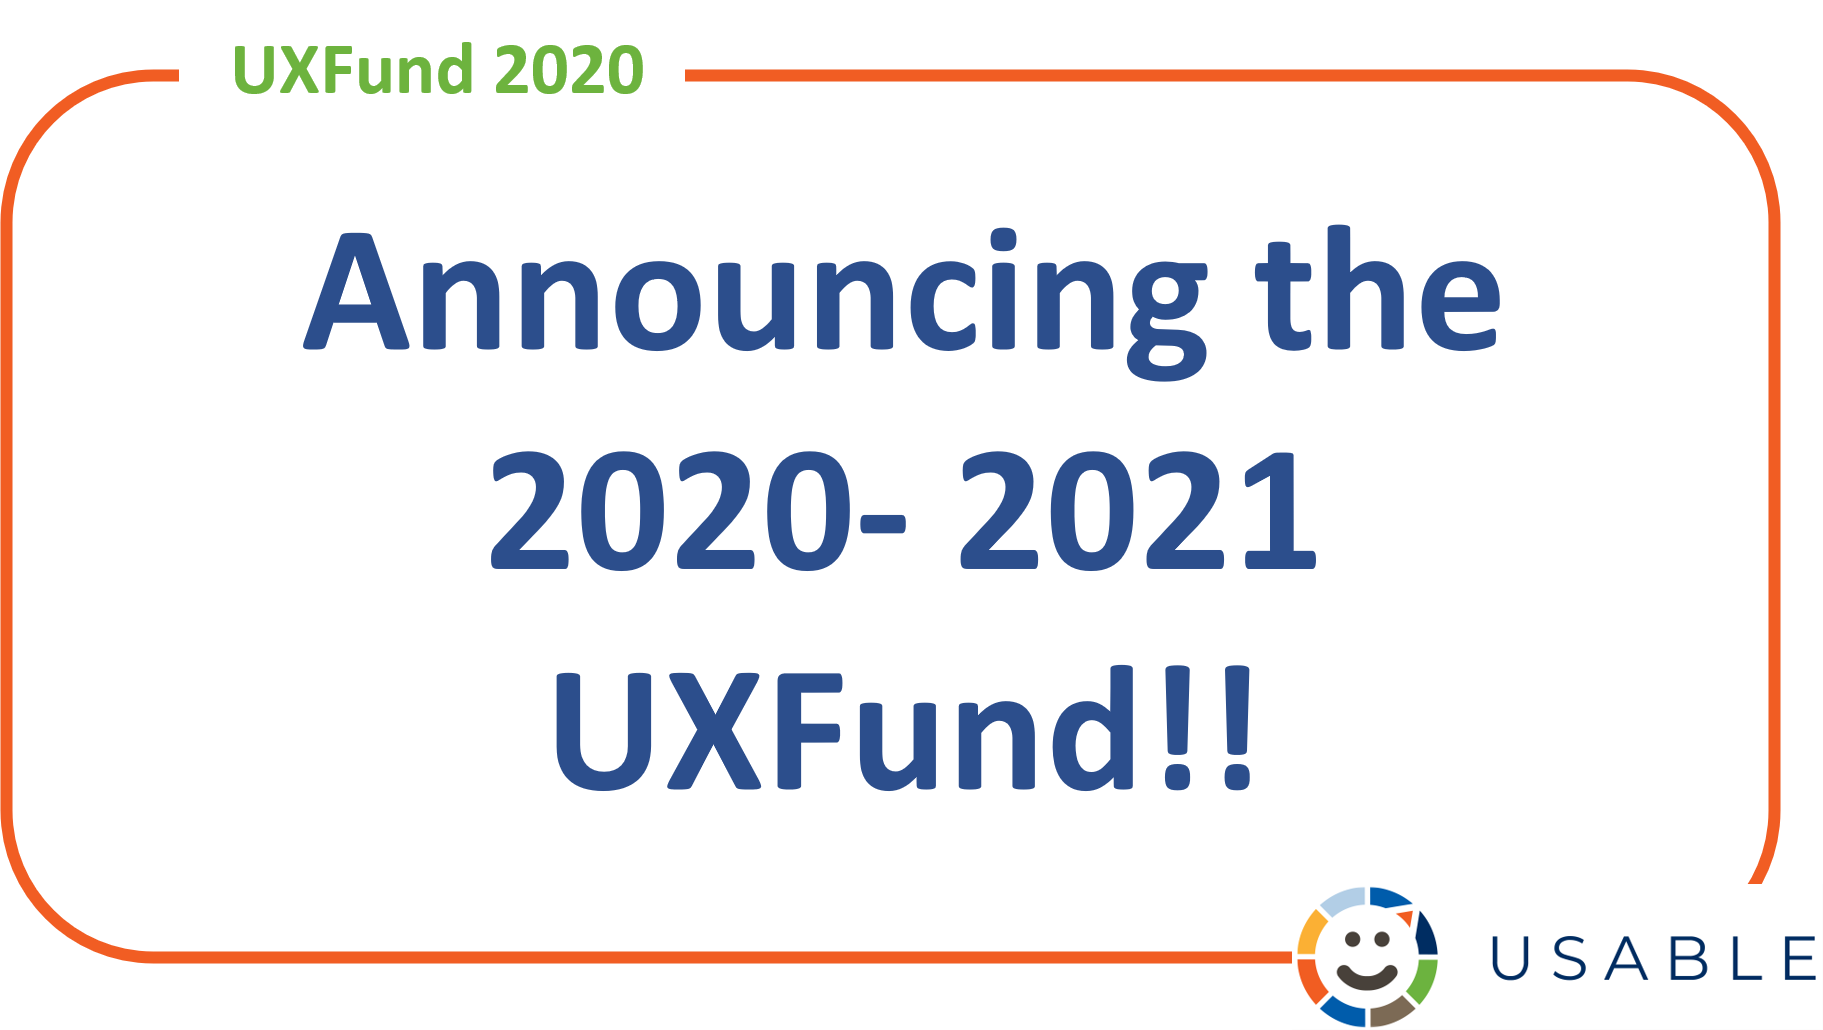 Image with title Announcing the UXFund 2020-2021 in text